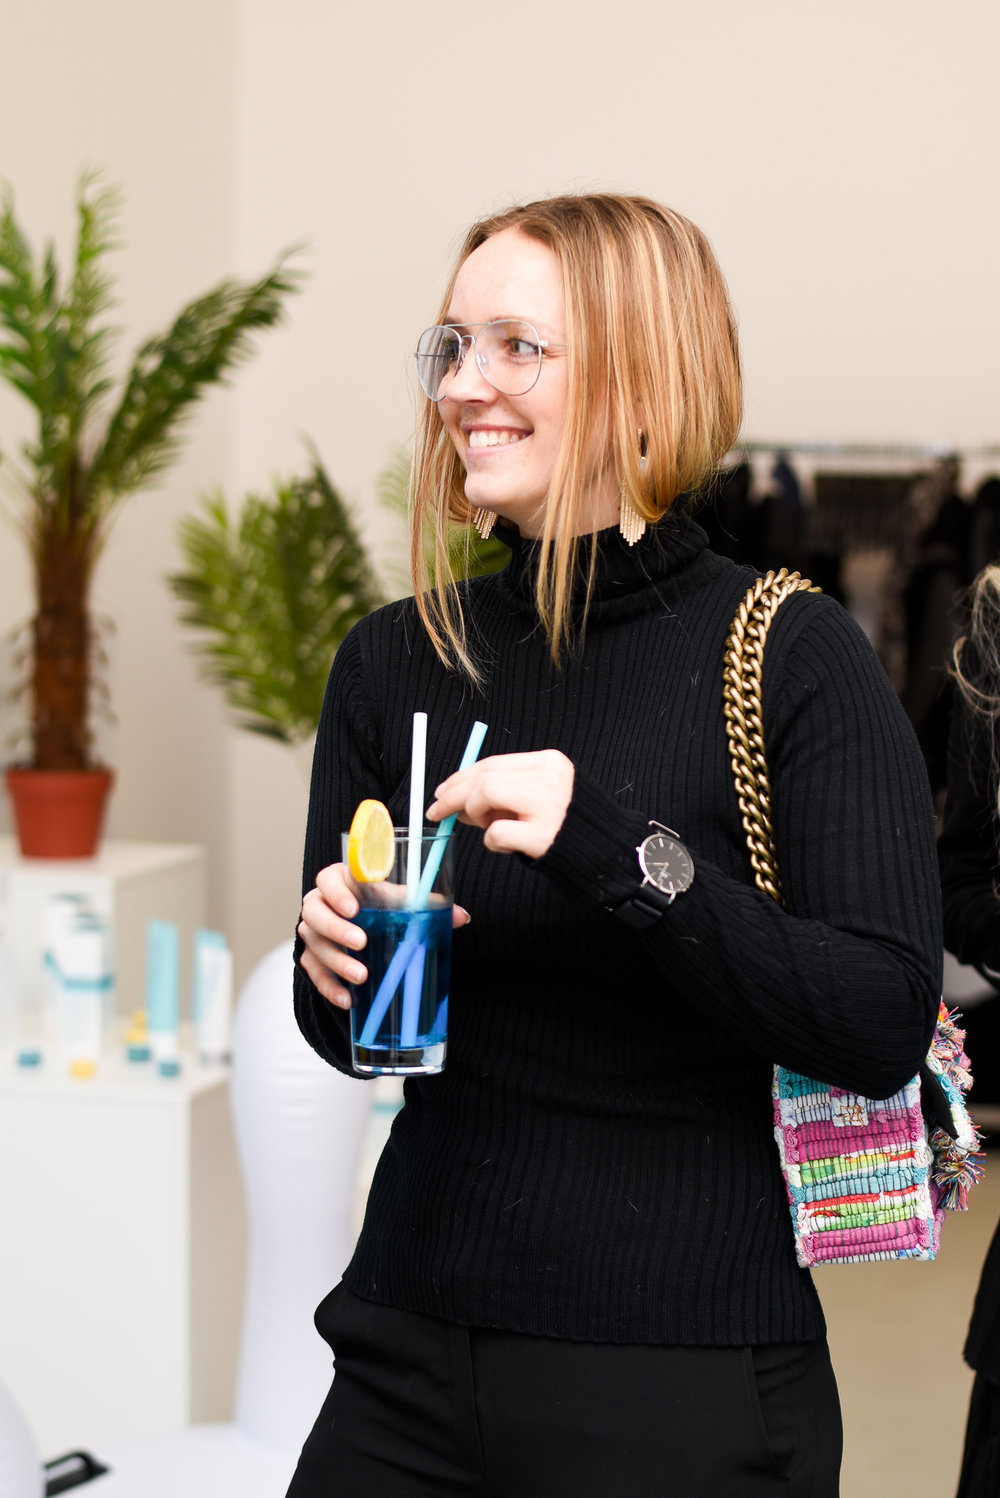 Frederikke Egel, scandinavian blogger drinking summer drink at an event.